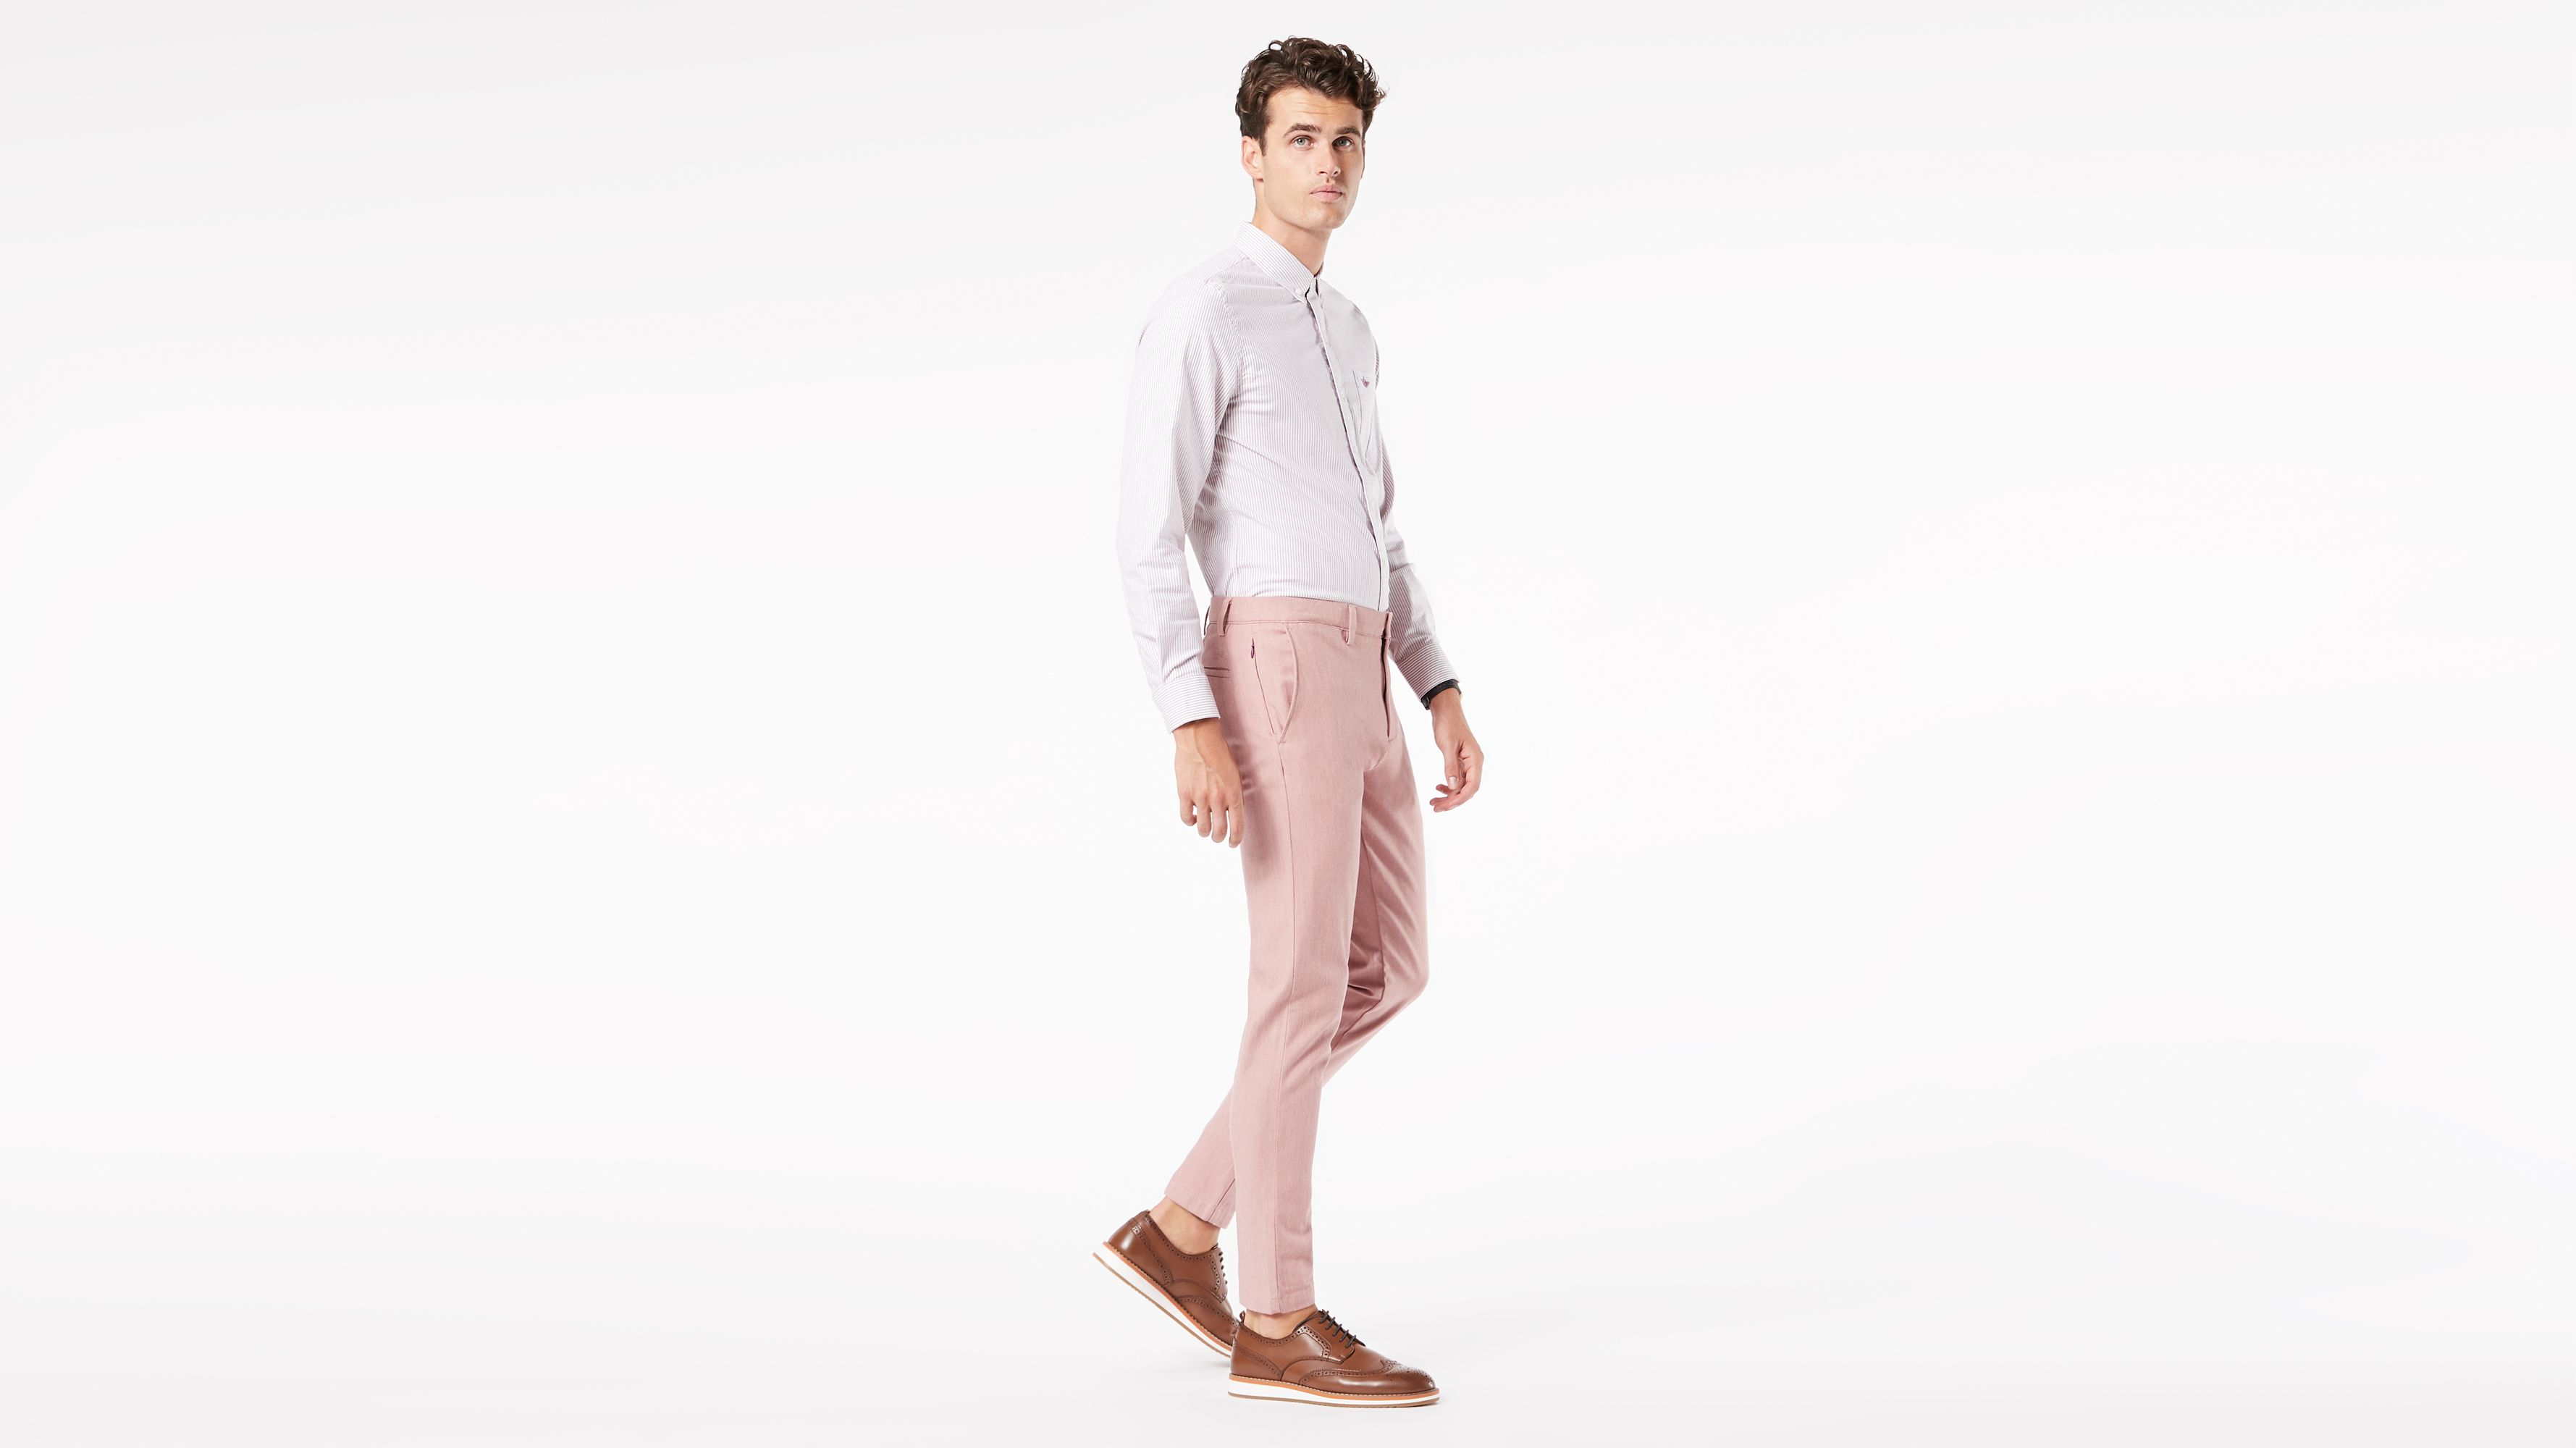 Pink - COST-M NEW 60s Shirt Size: Chest 38`-40`, Leg Inseam 32.75`